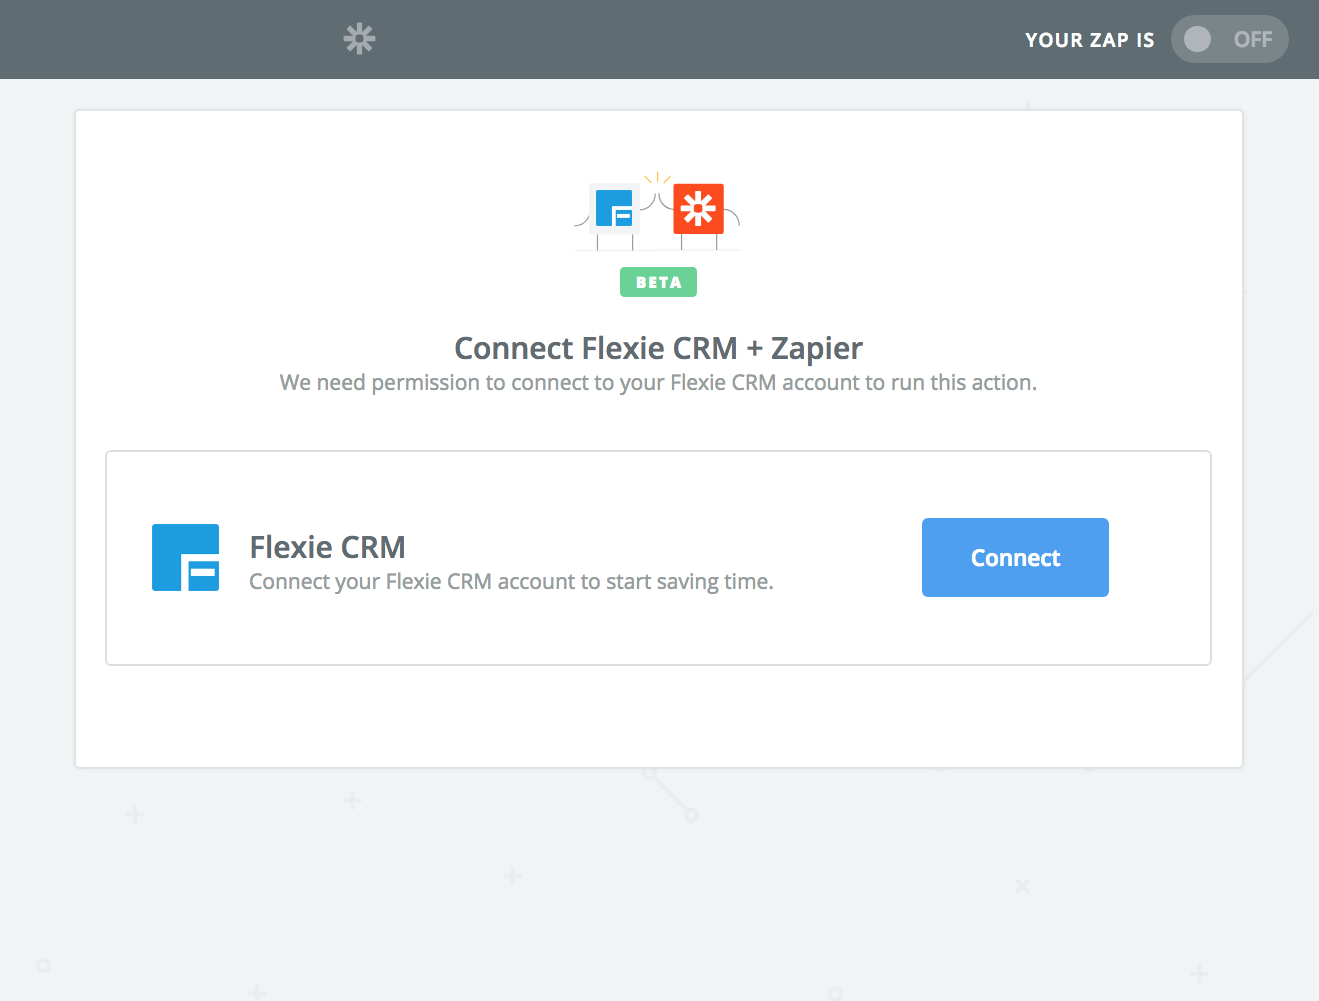 Click to connect Flexie CRM